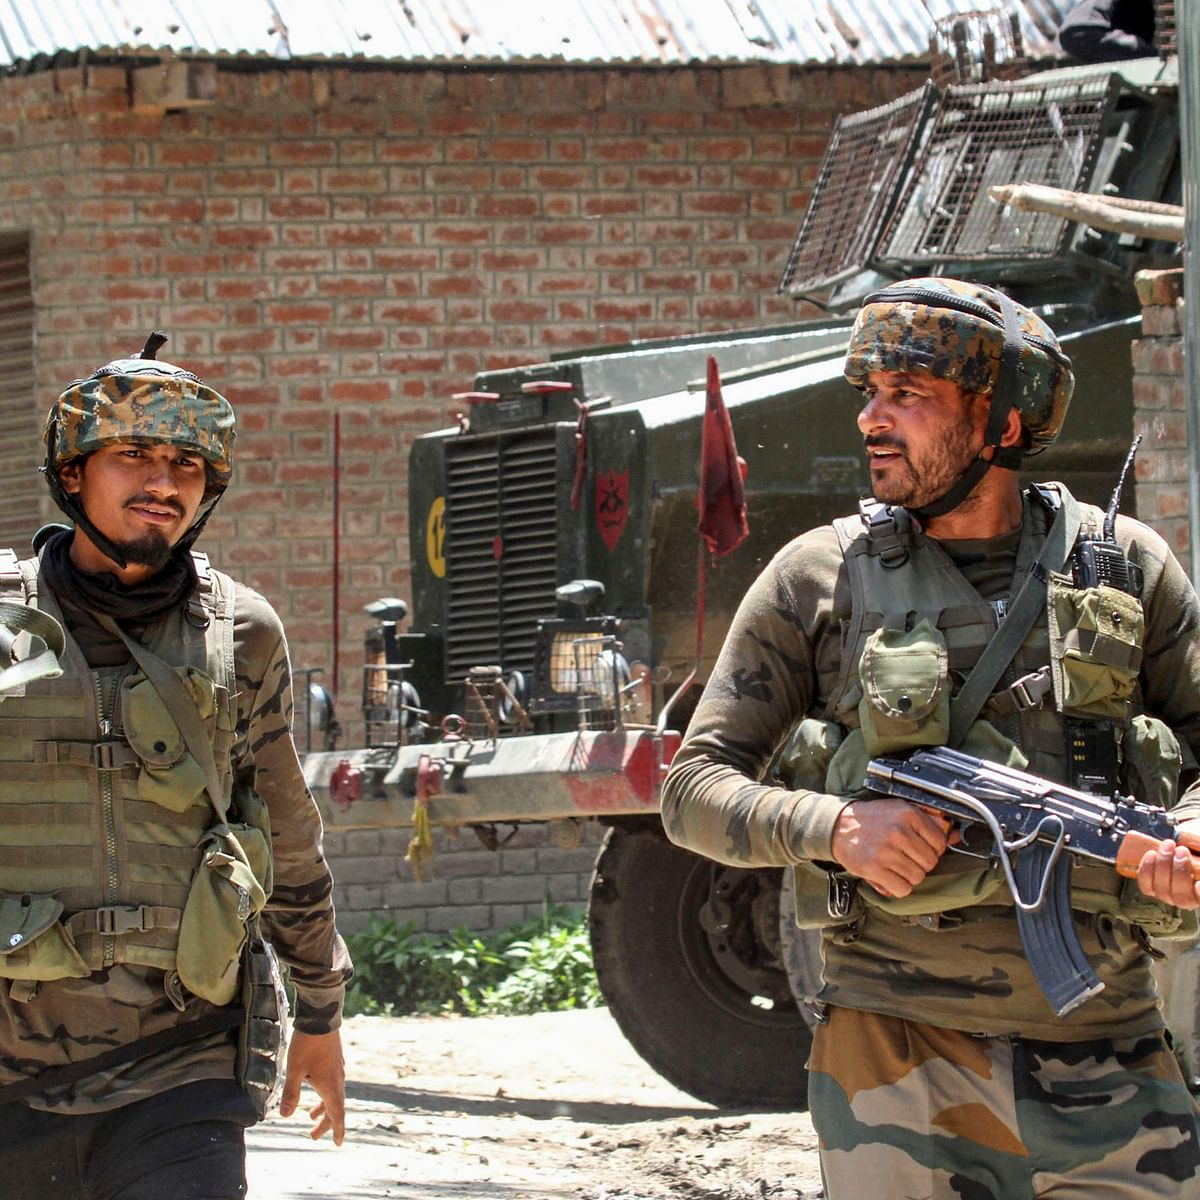 5 Hizb militants killed in Shopian encounter